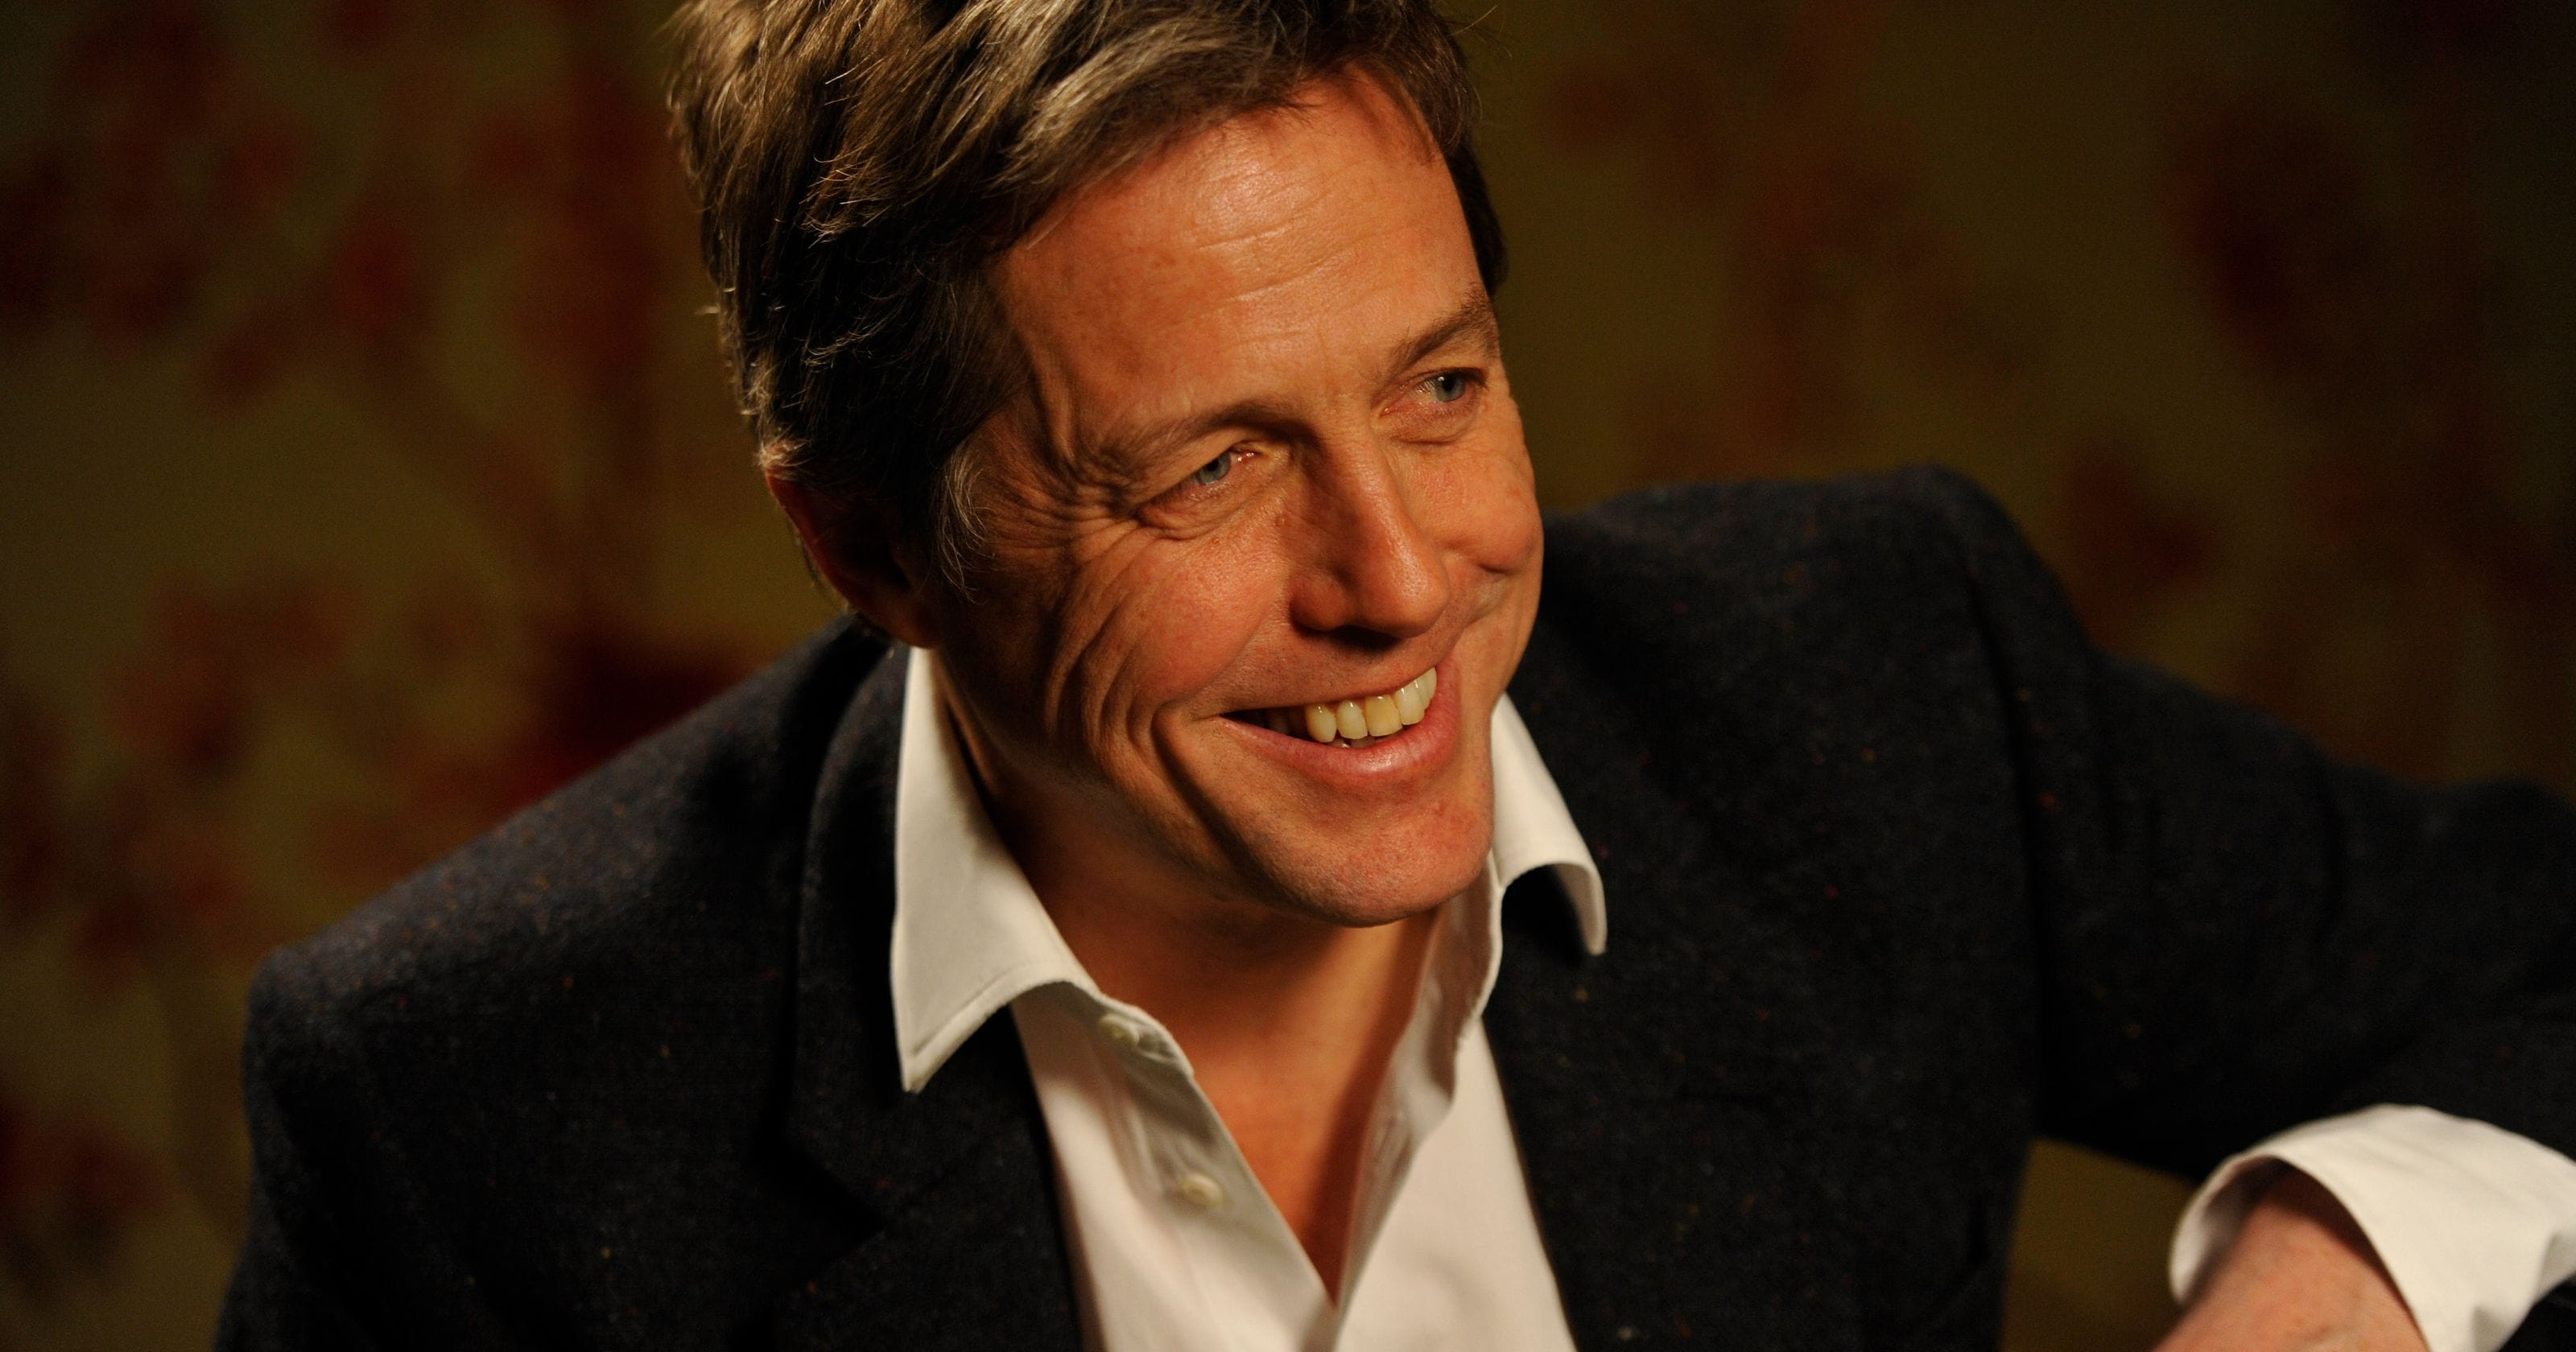 Hugh Grant Widescreen for desktop